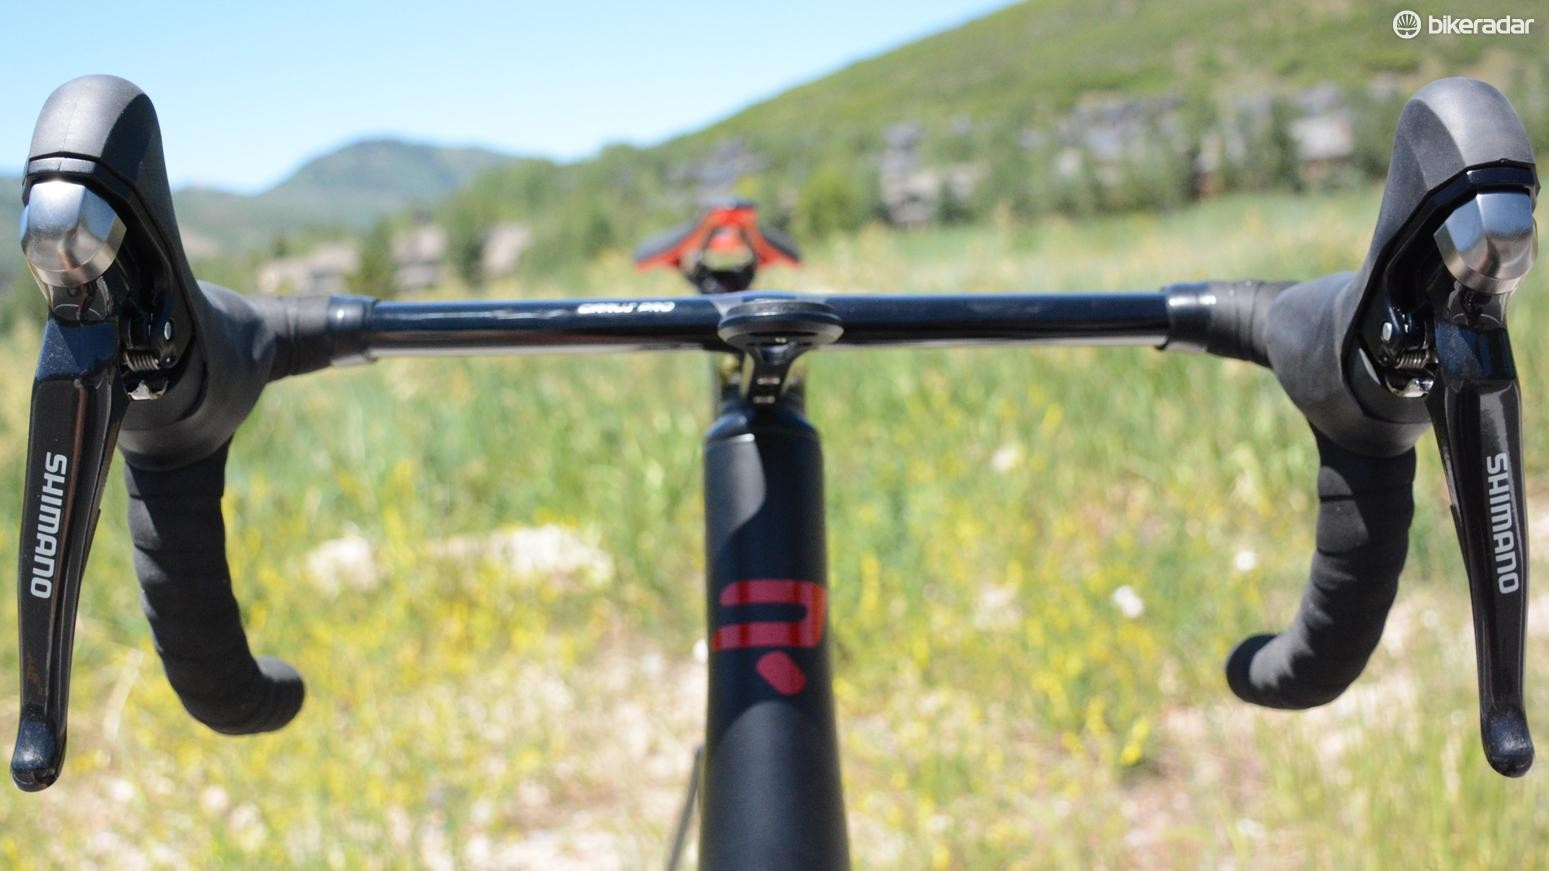 The hydraulic brake lines and Di2 electronic wires run internally through the bars and down the steerer